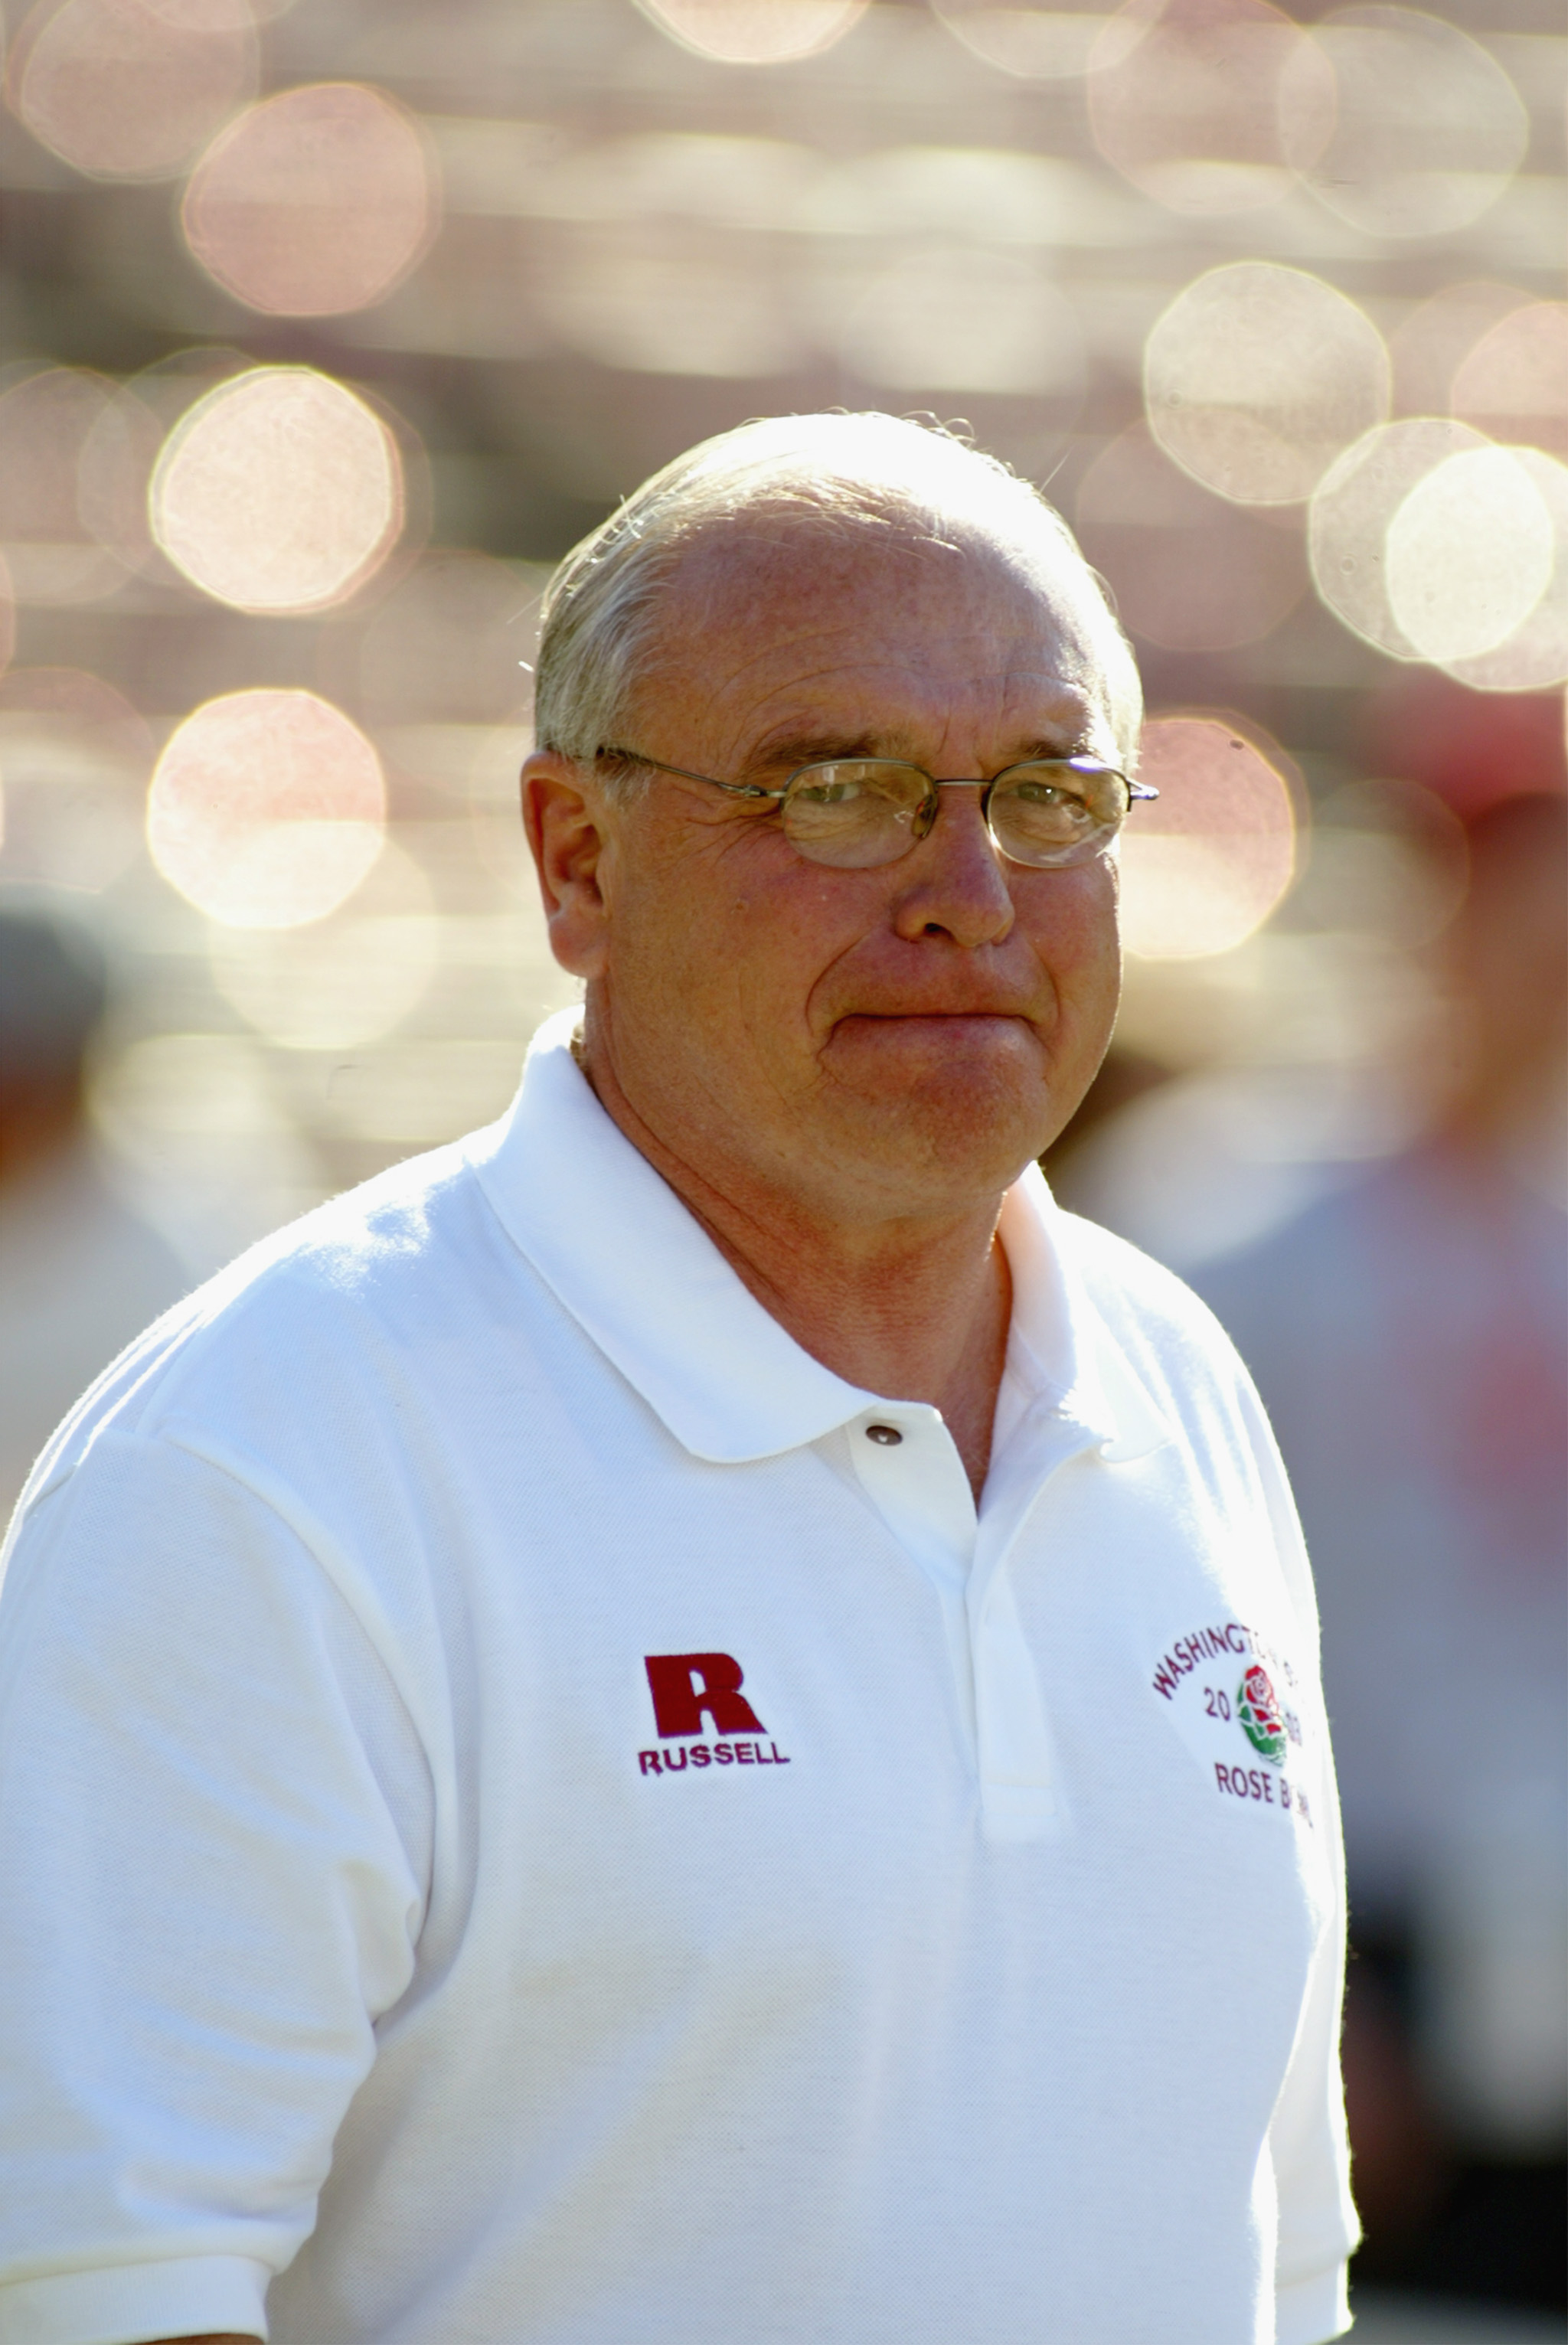 PASADENA, CA - JANUARY 1:  Head coach Mike Price of the Washington State University Cougars during team warmups prior to the 89th Rose Bowl against the University of Oklahoma Sooners on January 1, 2003 at the Rose Bowl in Pasadena, California.  Price move